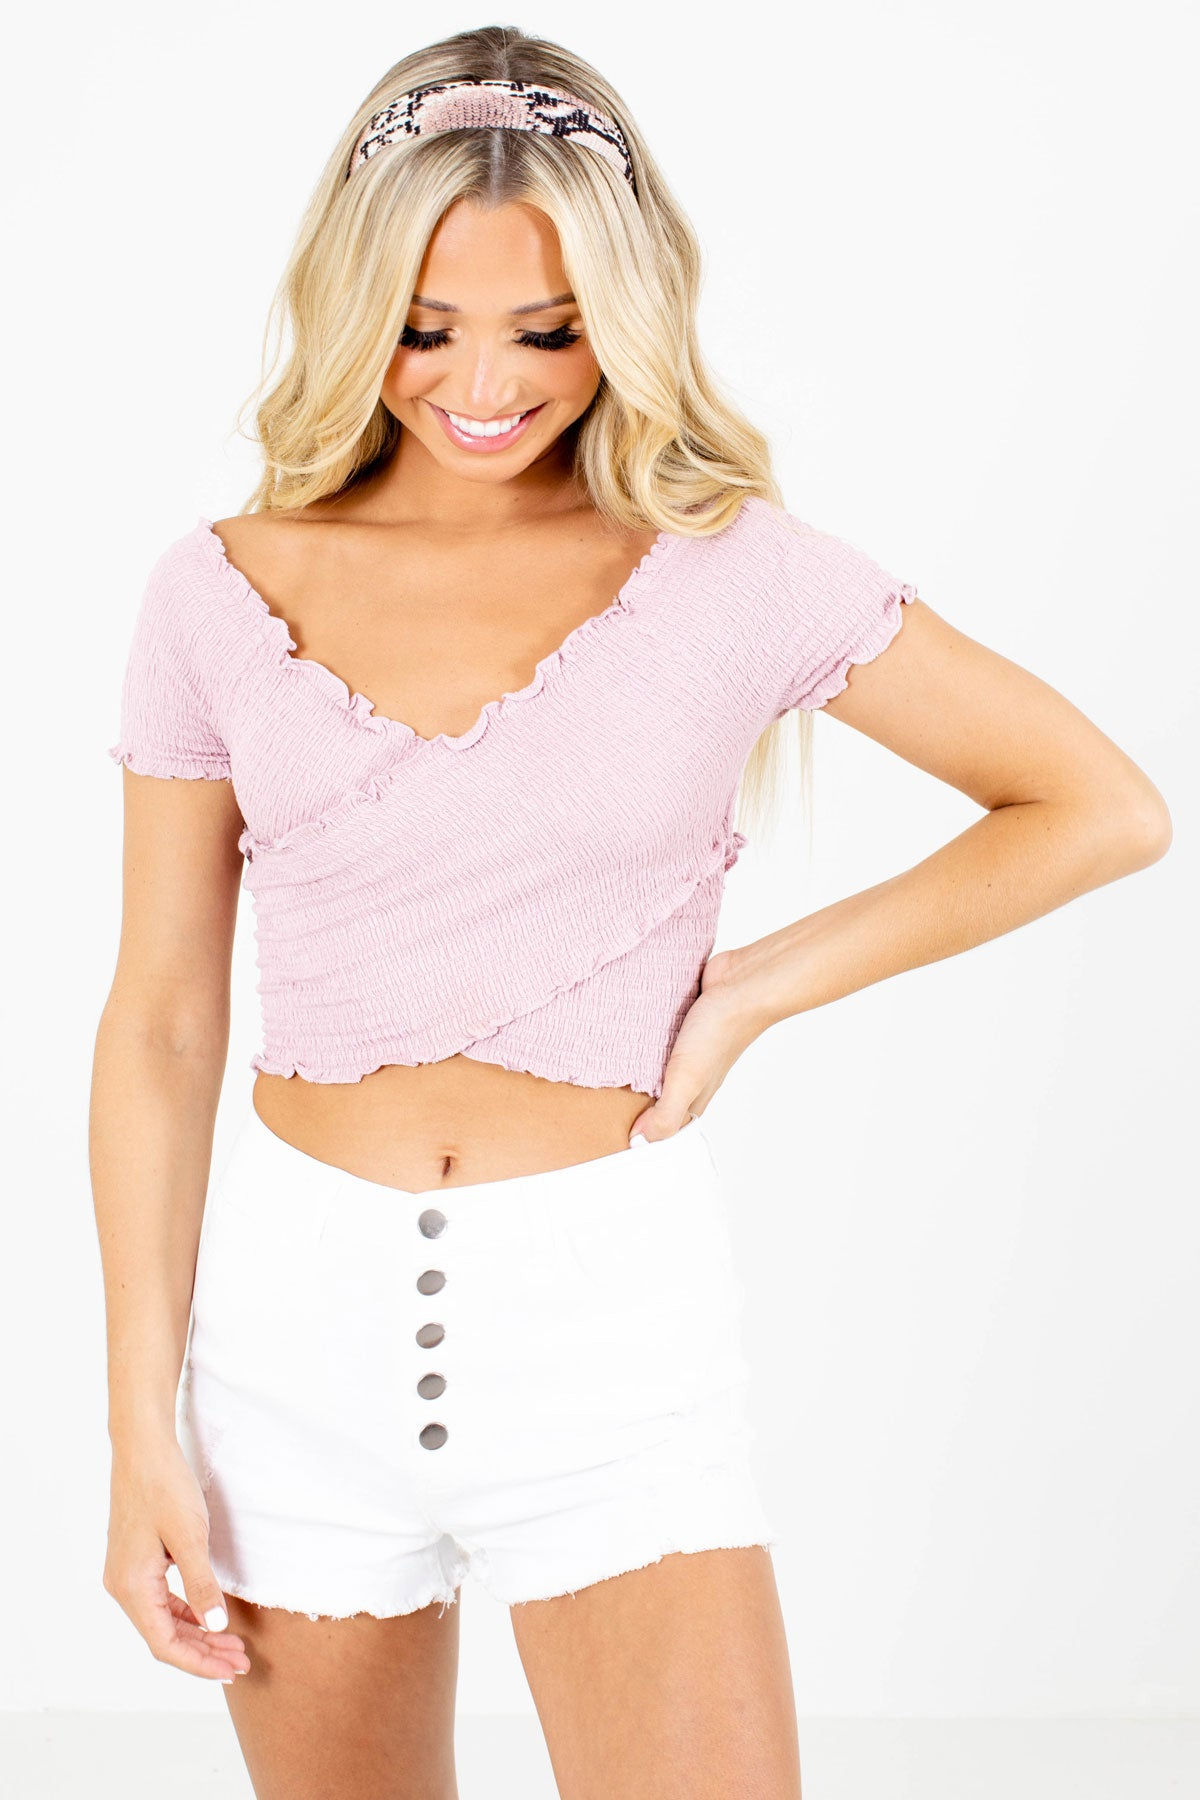 Mauve Smocked Material Boutique Crop Tops for Women